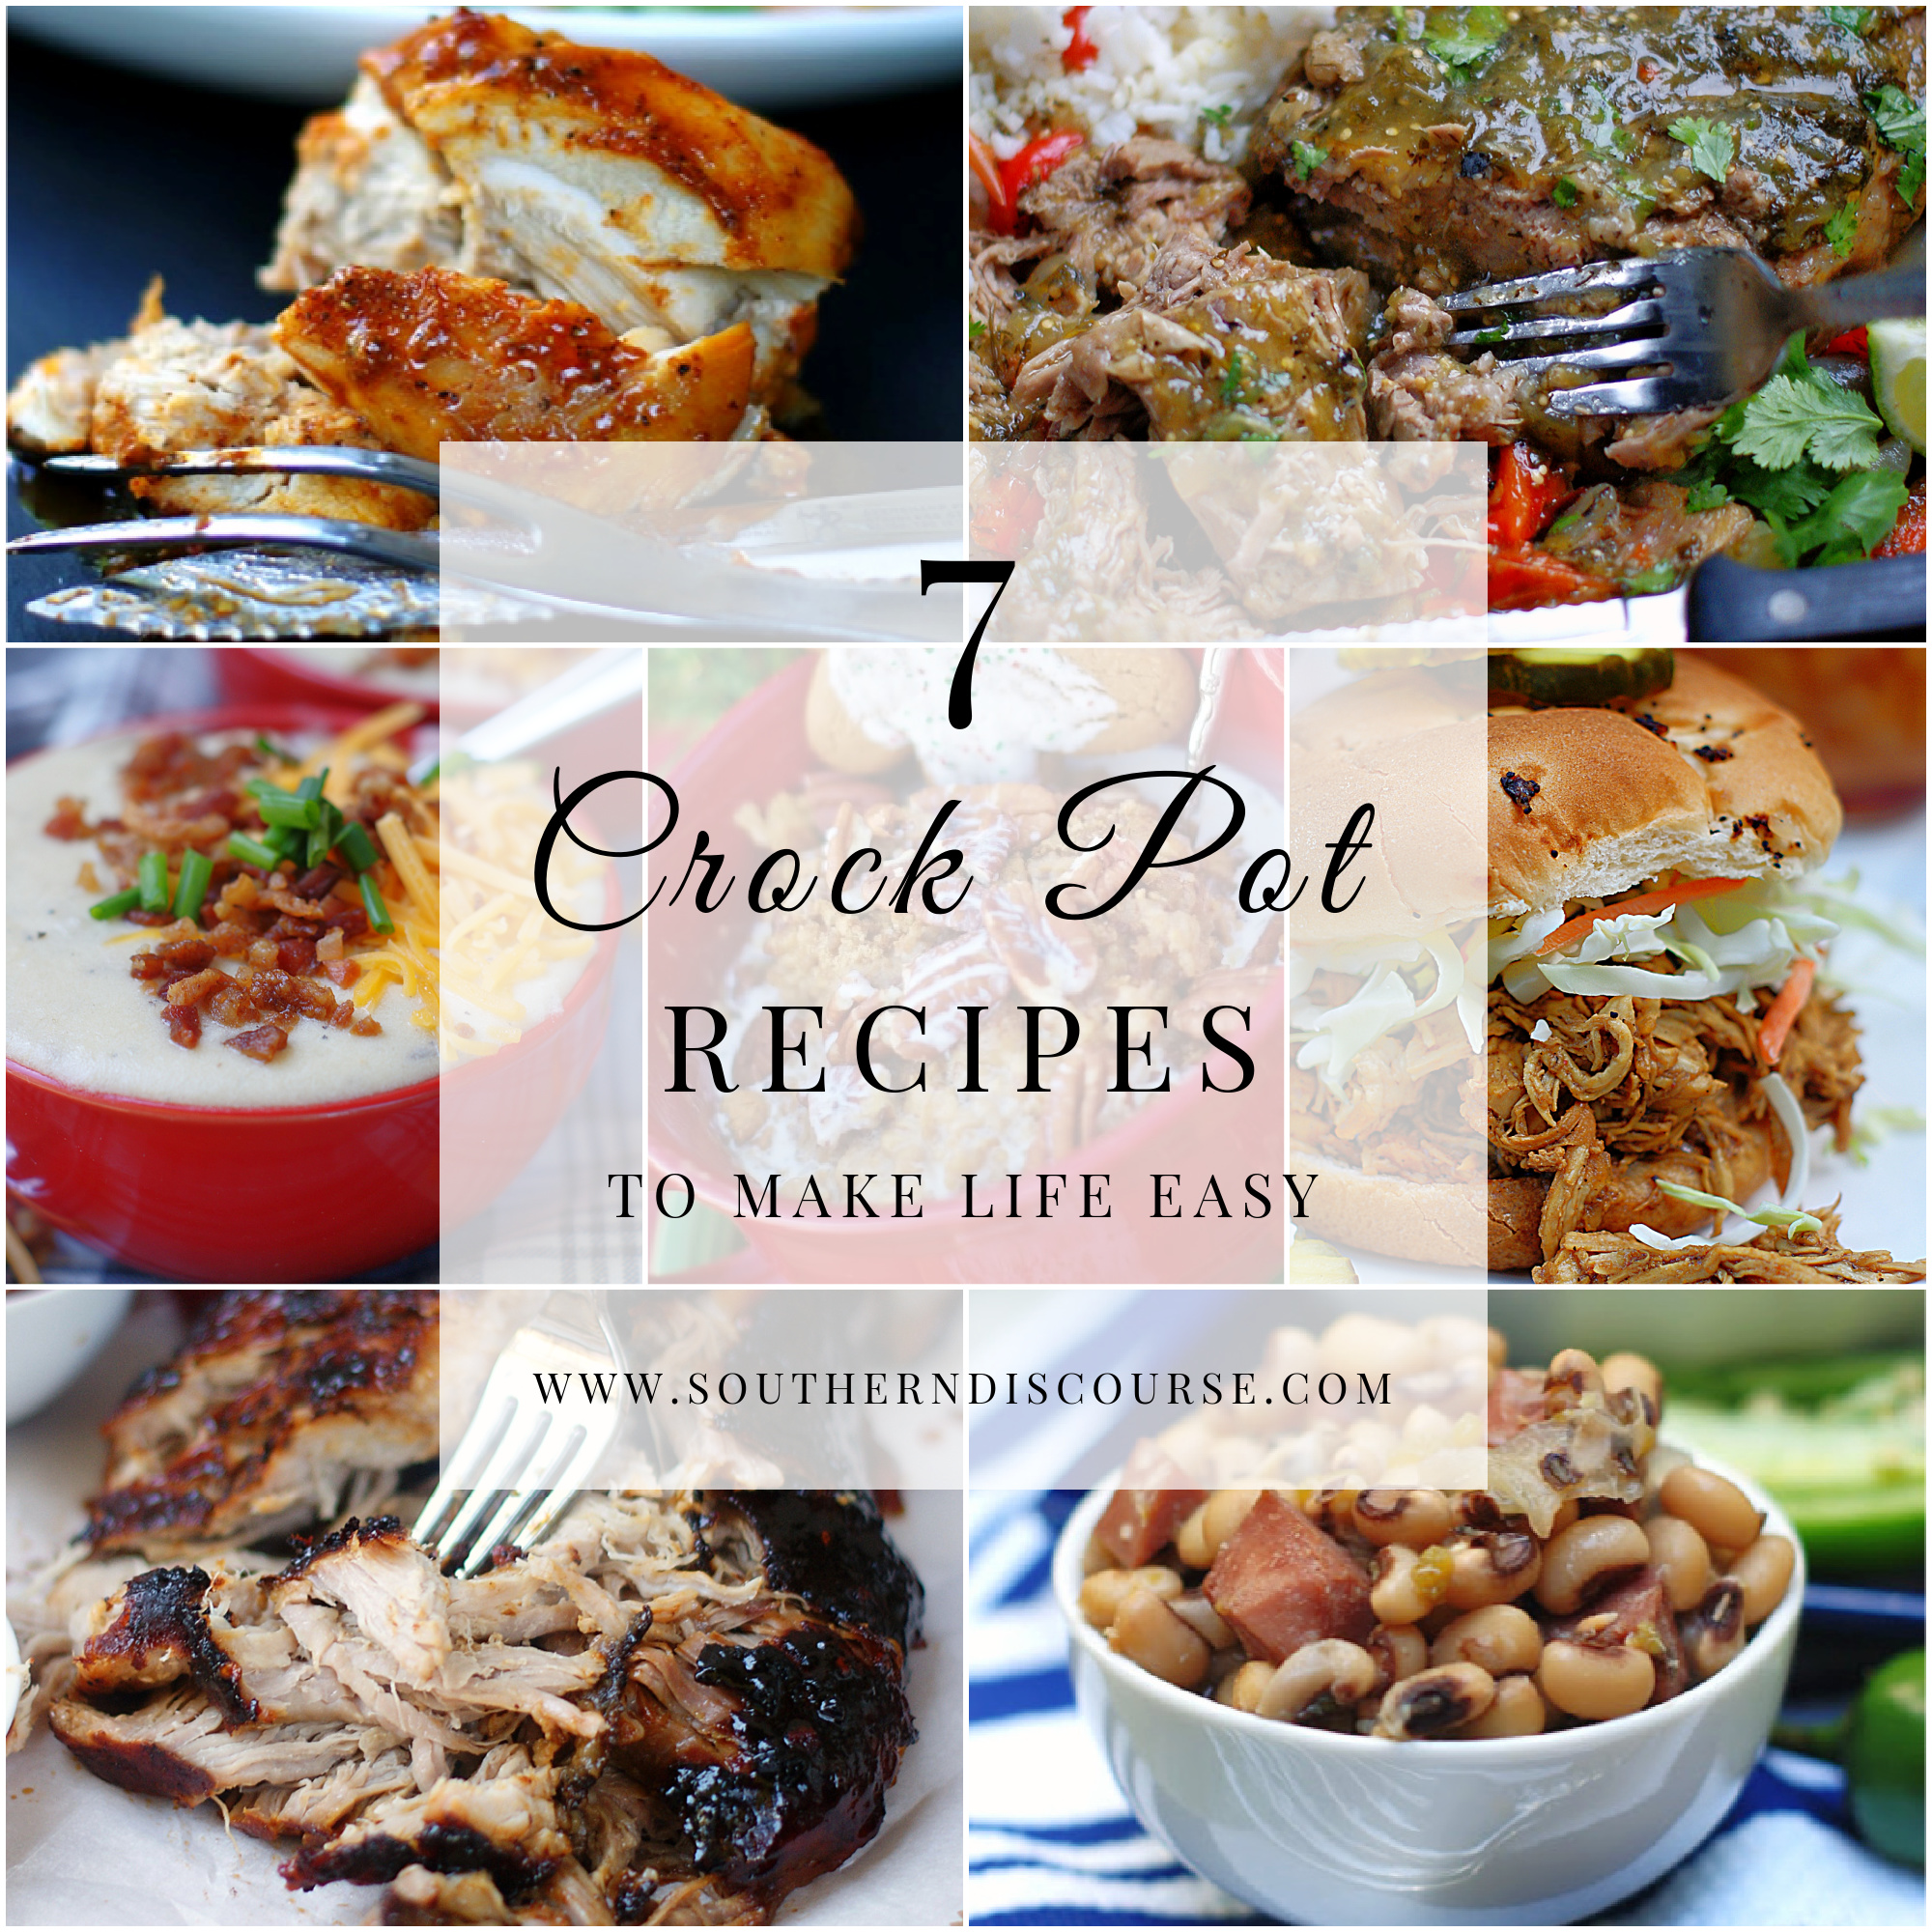 7 slow cooker recipes to make life easy. From BBQ sandwiches to soup to side dishes to breakfast, an easy slow cooker recipe can make enjoying every meal with your family delicious!